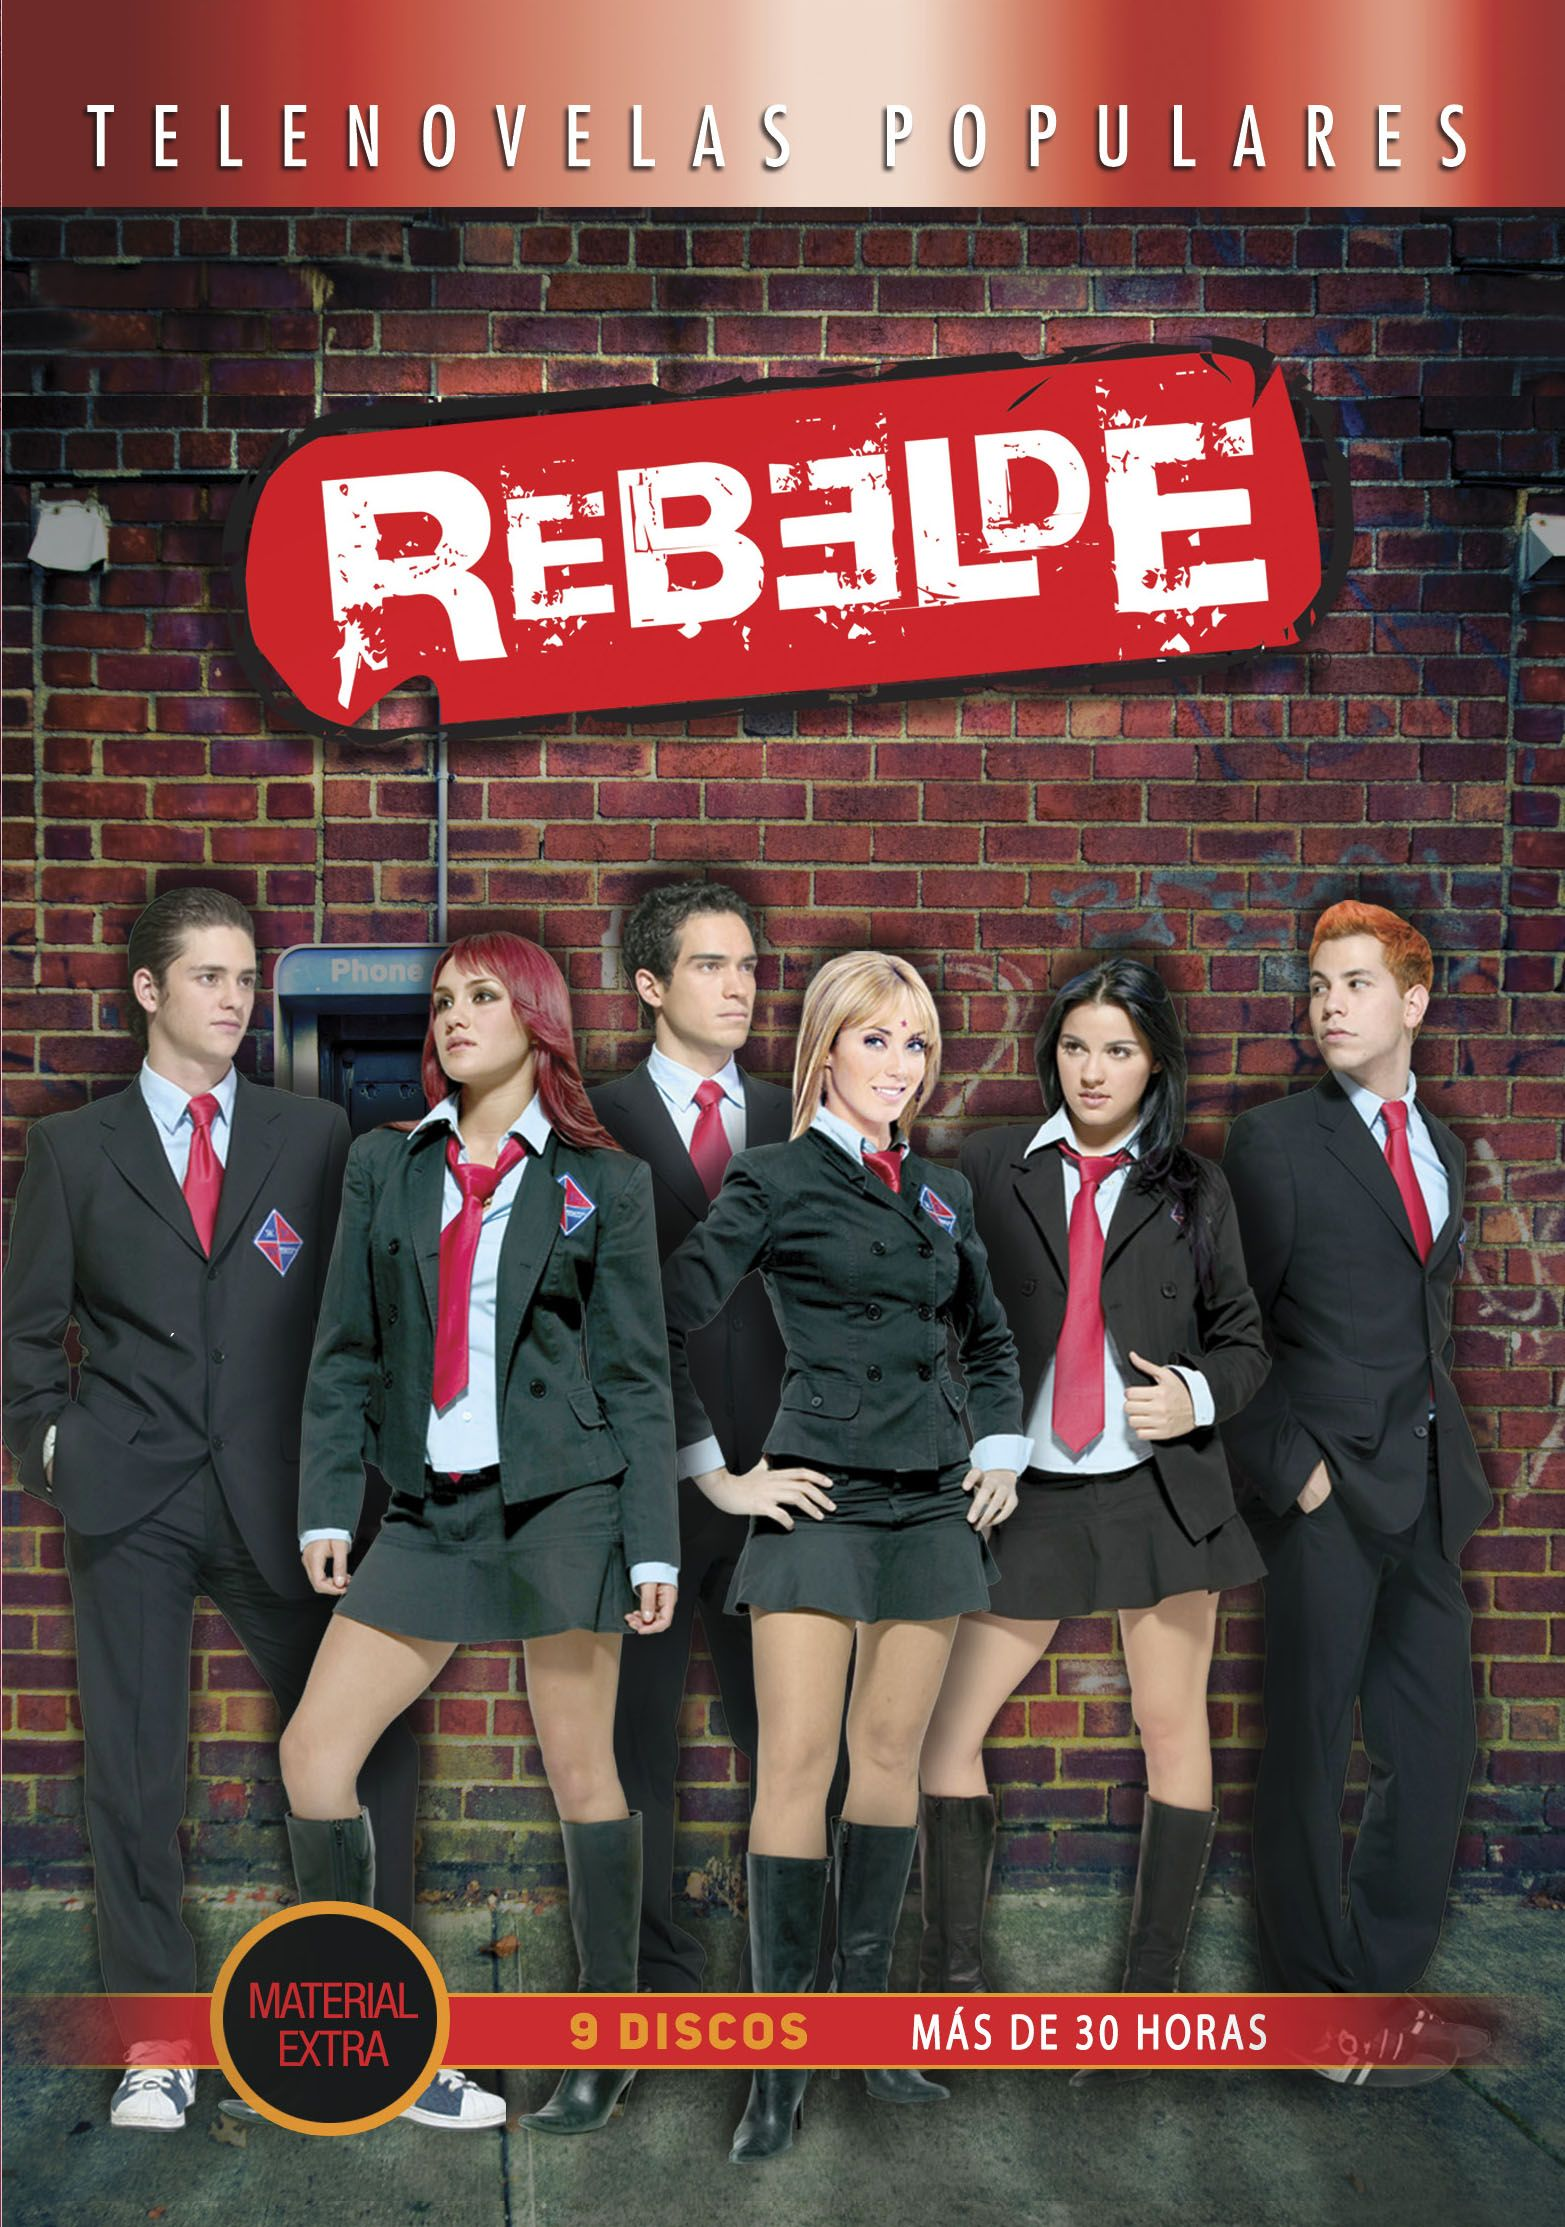 Rebelde Is A Mexican Telenovela Based In A School For The